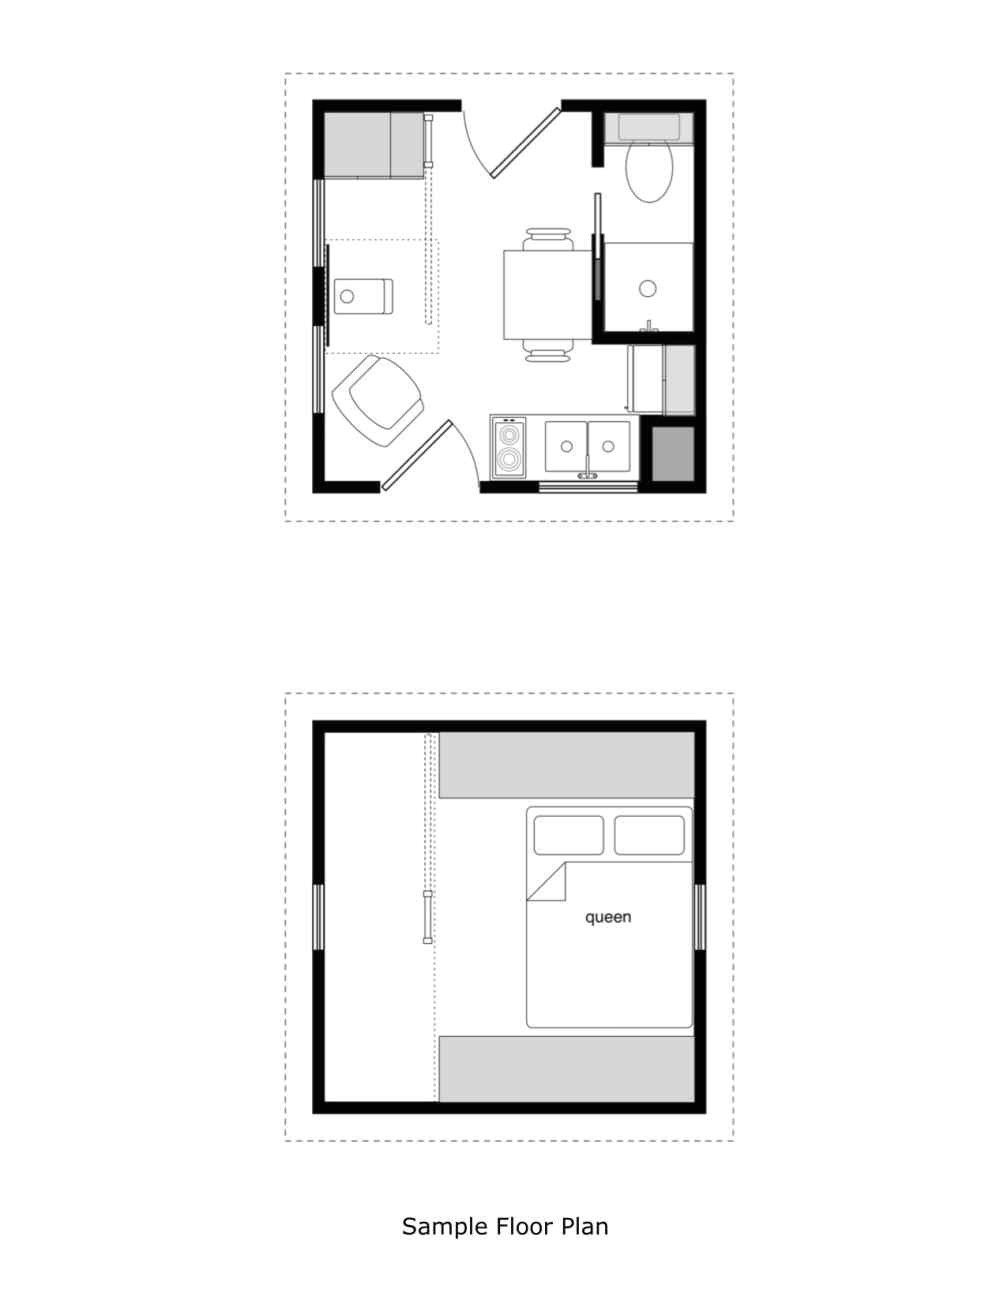 marvellous tiny house 10x12 floor plans x pictures best idea home robinson dragon fly design youtube maxresdefault robinson tiny house 10x12 dragon jpg